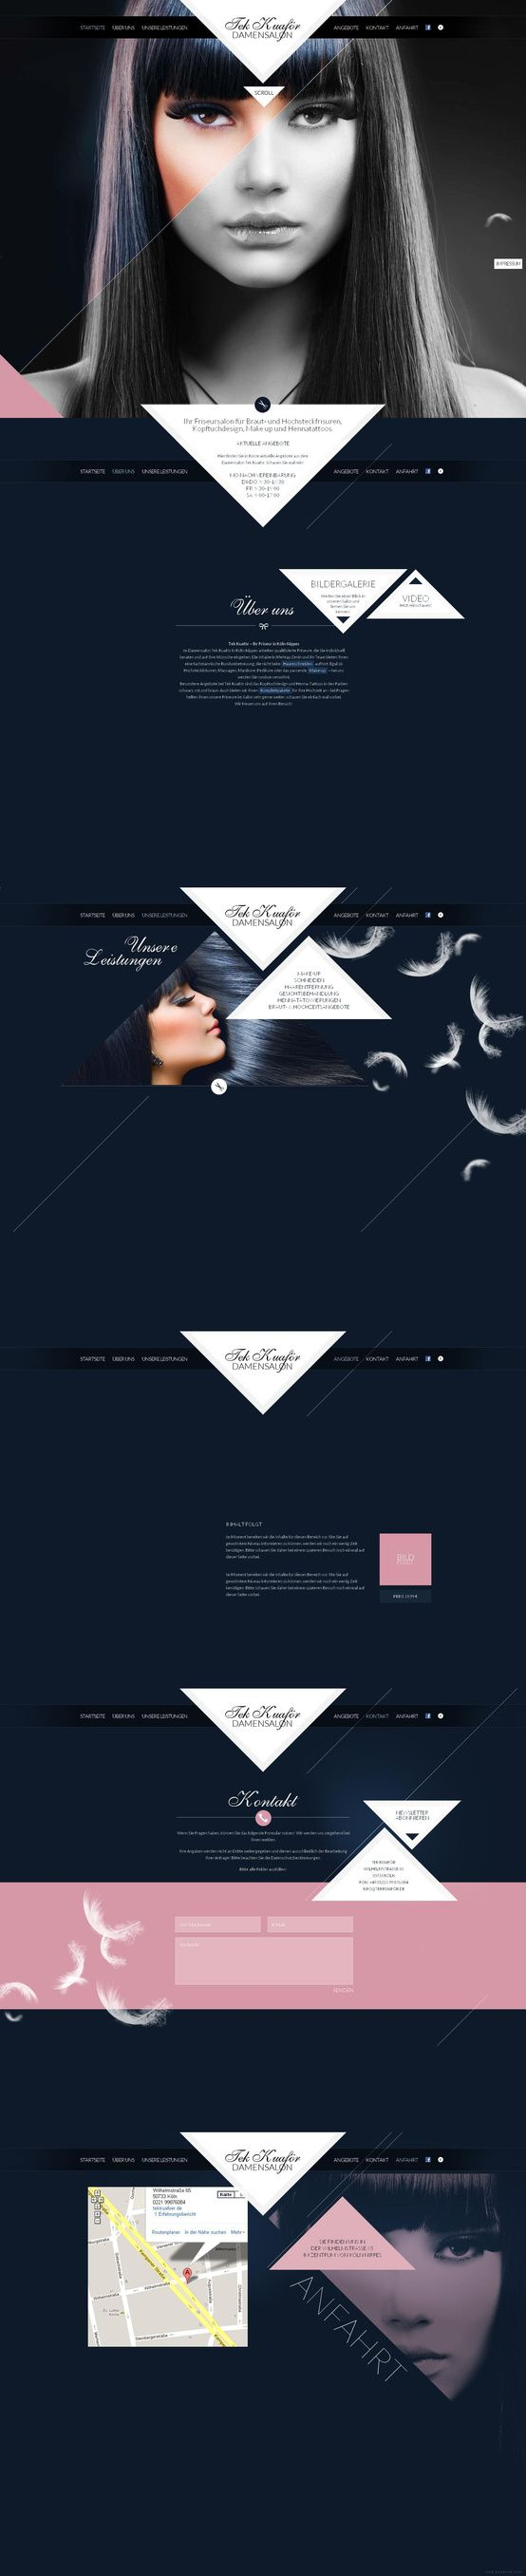 I'm not a huge fan of negative space, but in this design the negative space work quite well. it gives the design more elegance. AR.